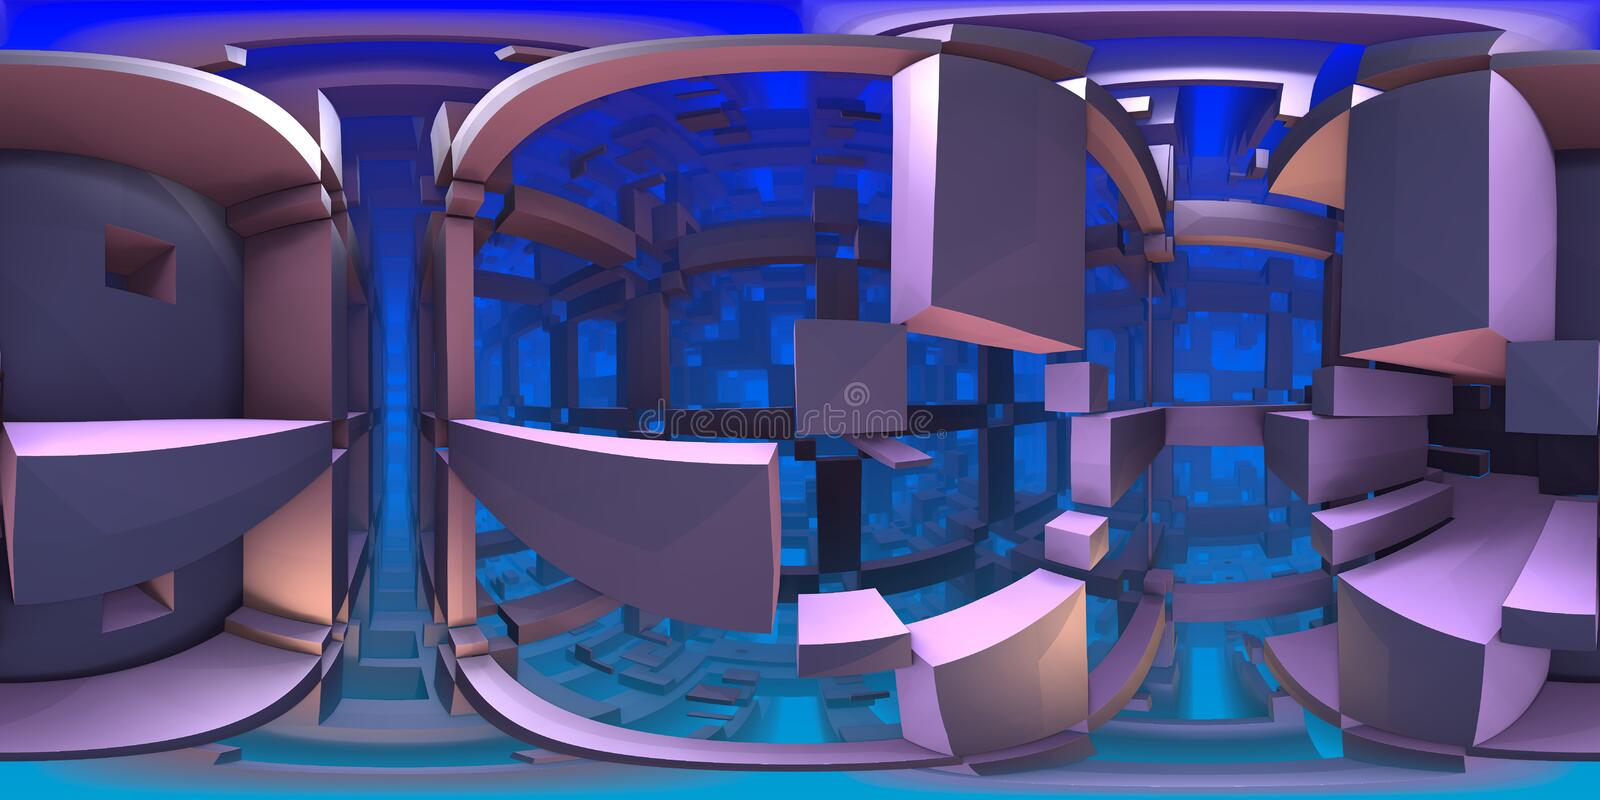 360 degree labyrinth, abstract maze background panorama, equirectangular projection, environment map vector illustration